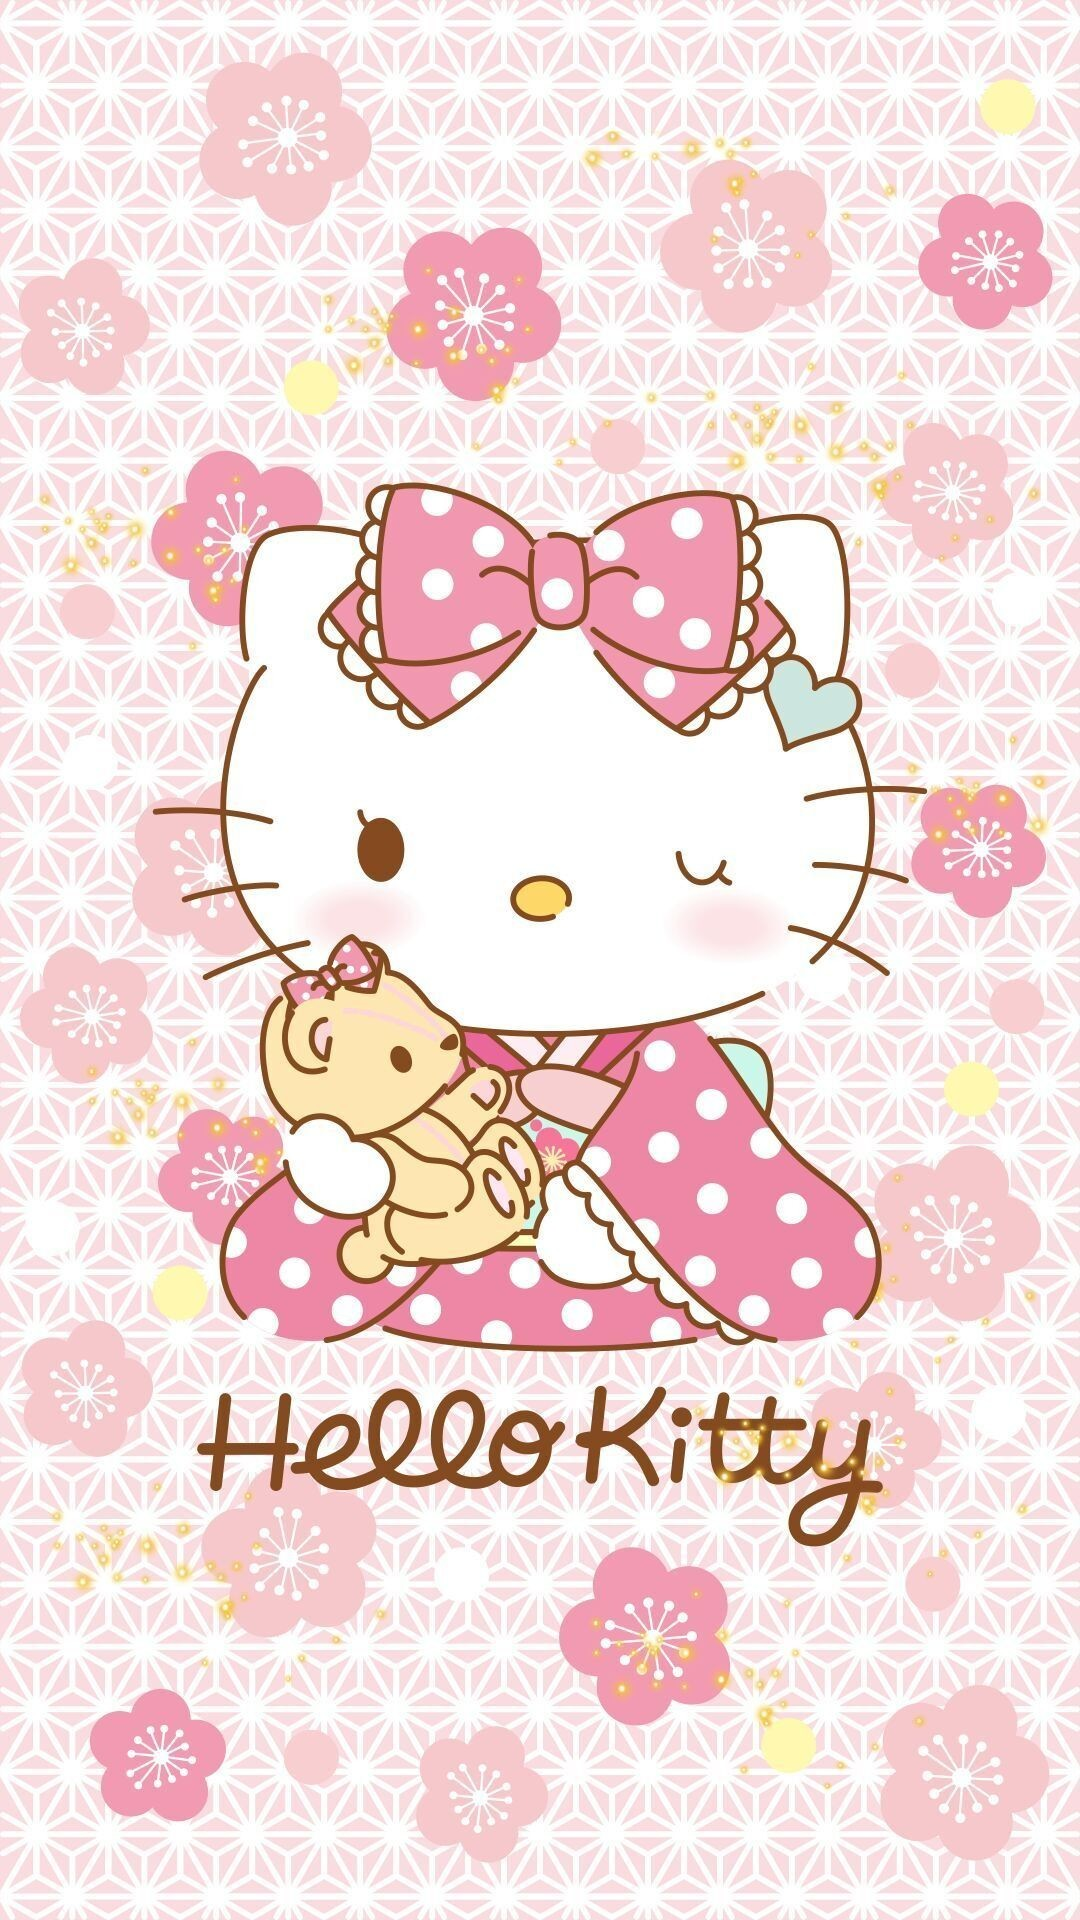 1080x1920 1920x1080 Hello Kitty Wallpaper 45618